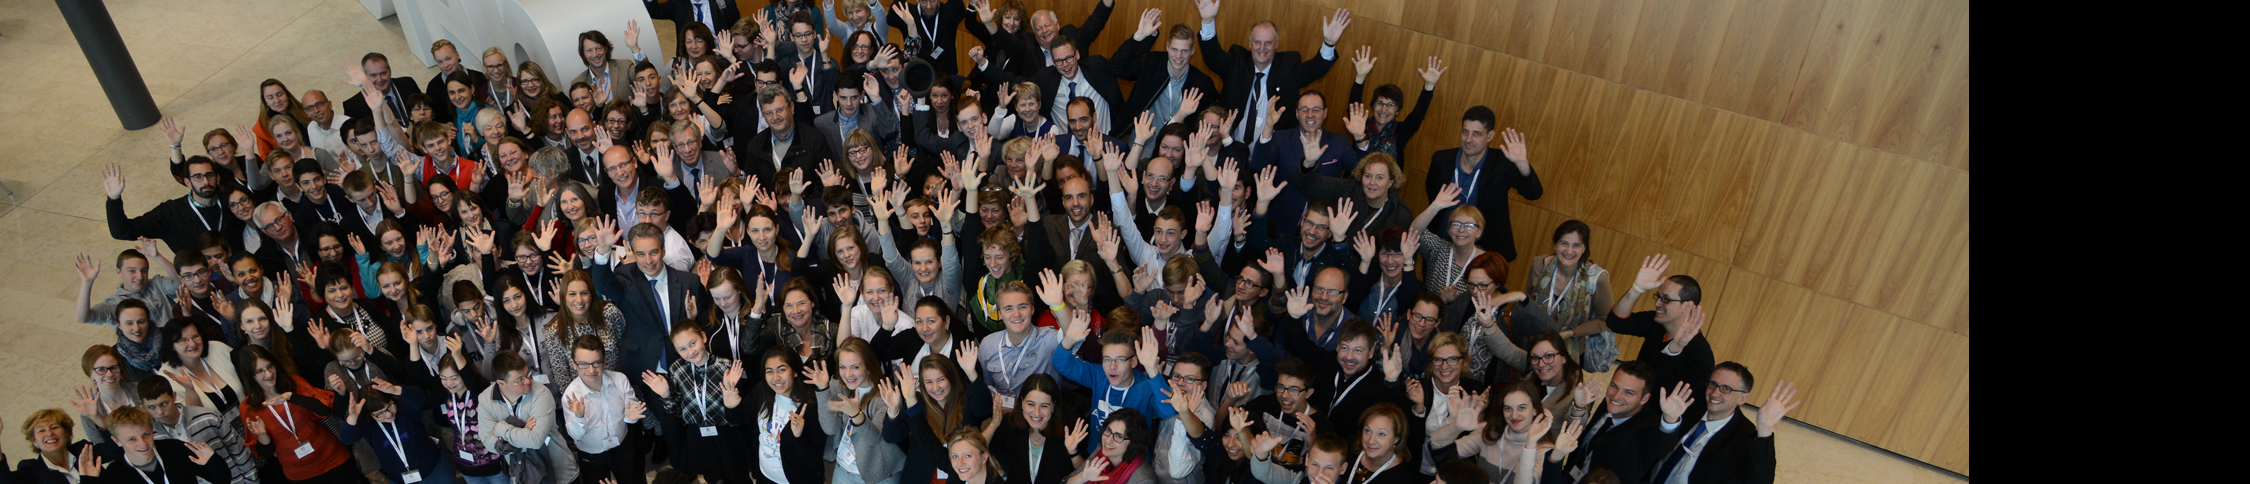 European Hearing participants in Luxembourg waving